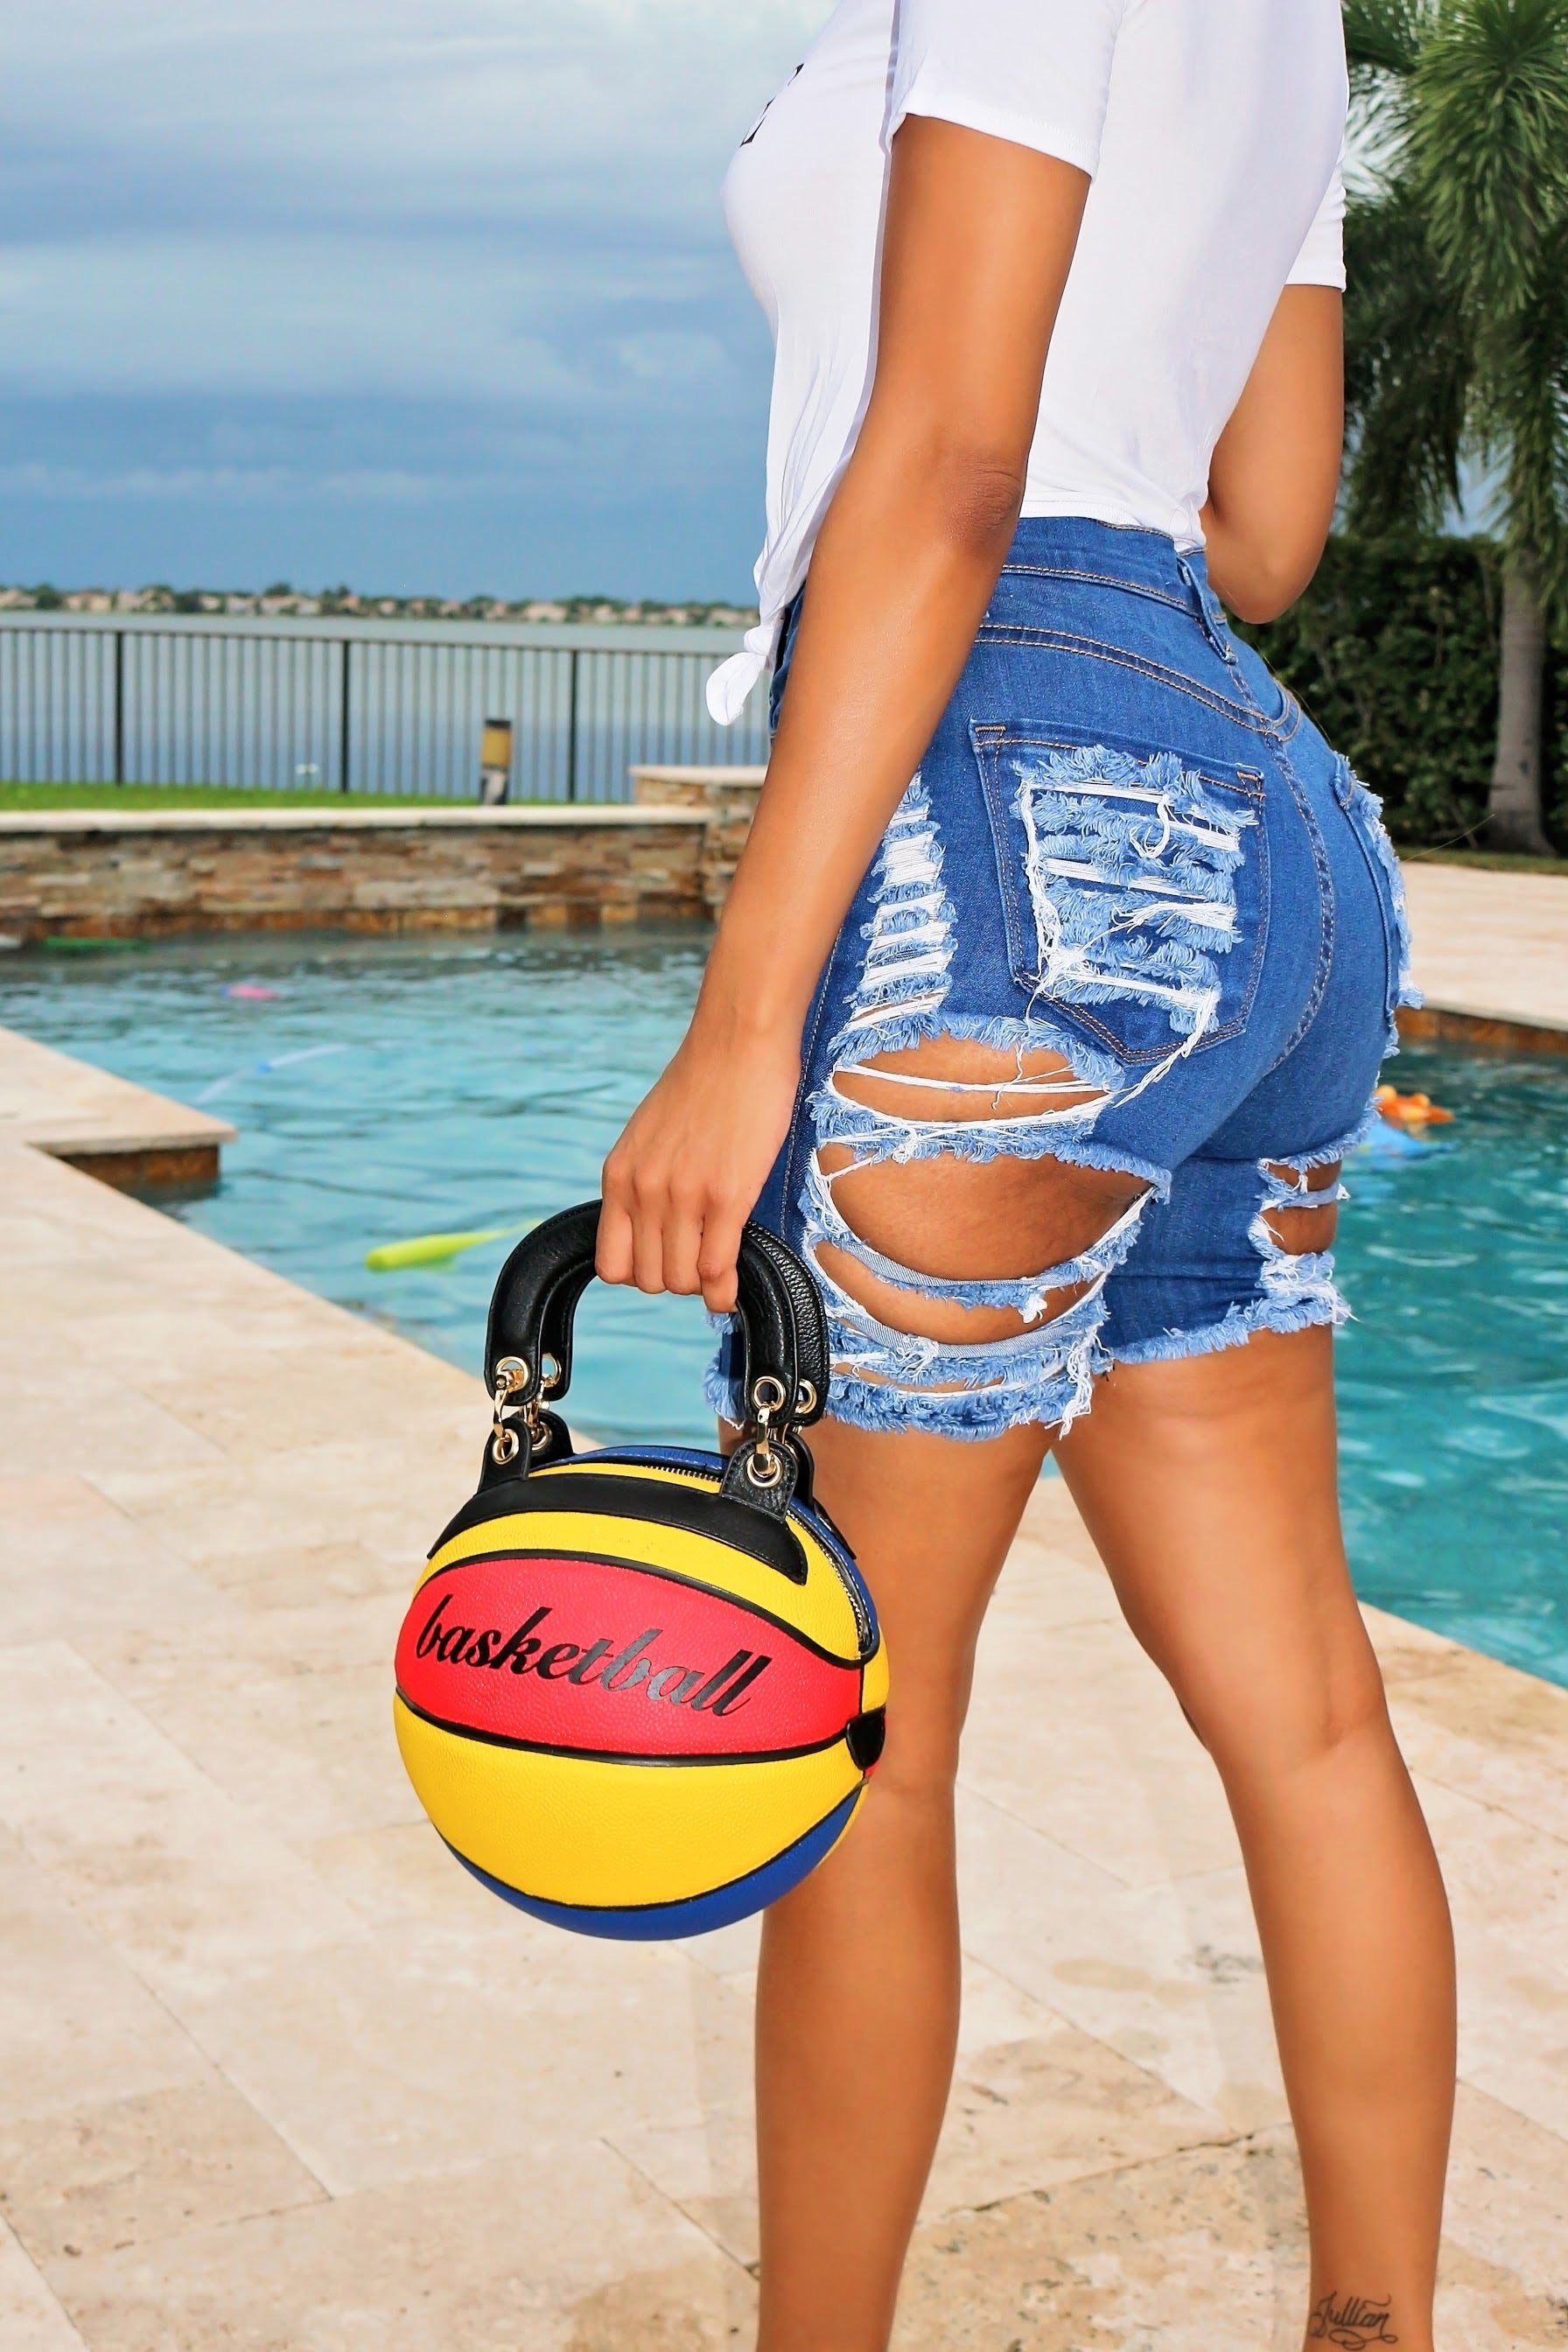 Bball swag -red and blue - Semai House Of fashion